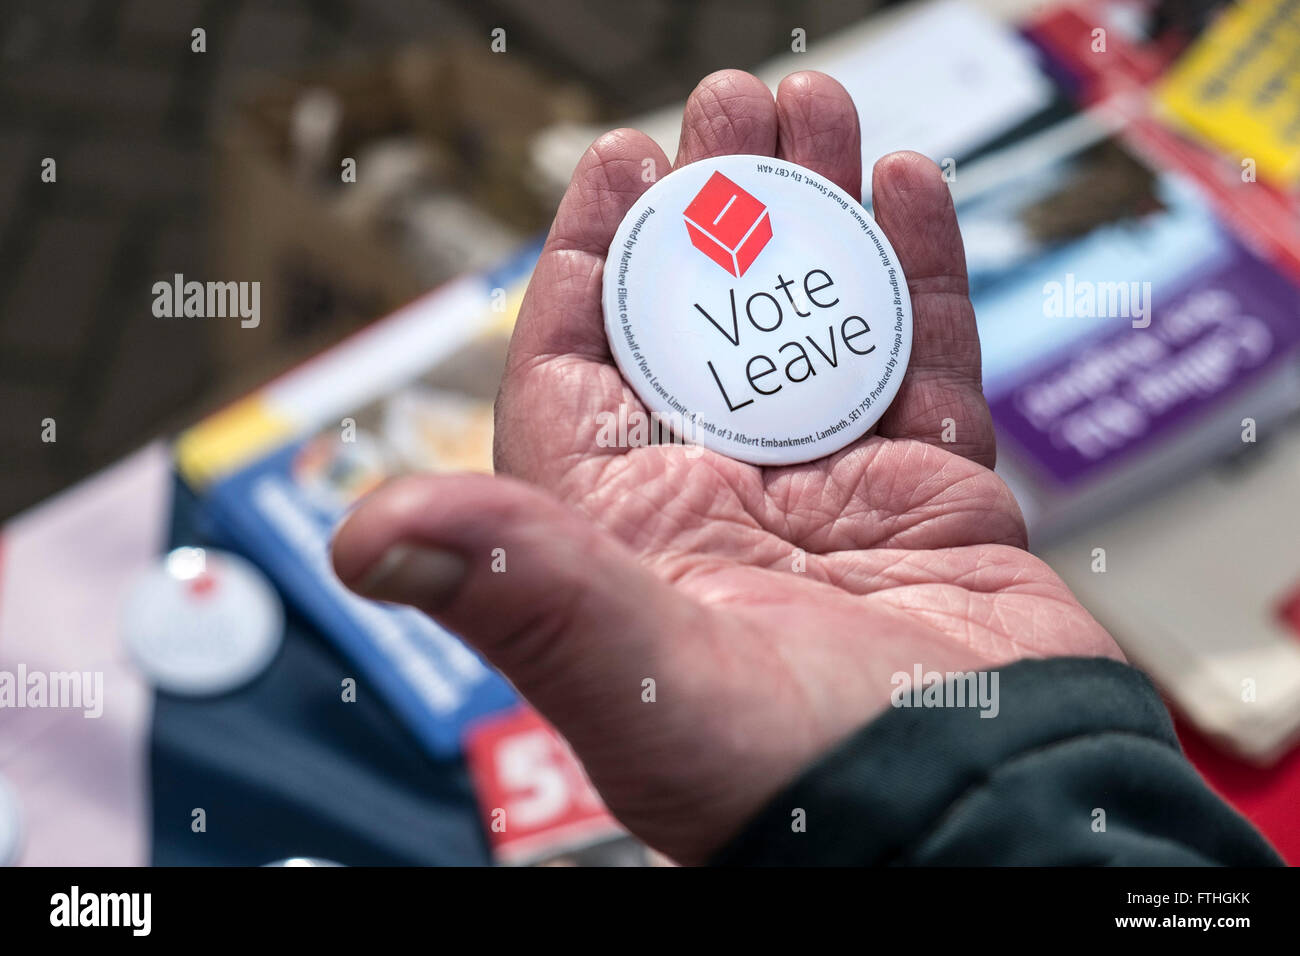 A badge supporting the UK exit from the European Union held in a hand. - Stock Image